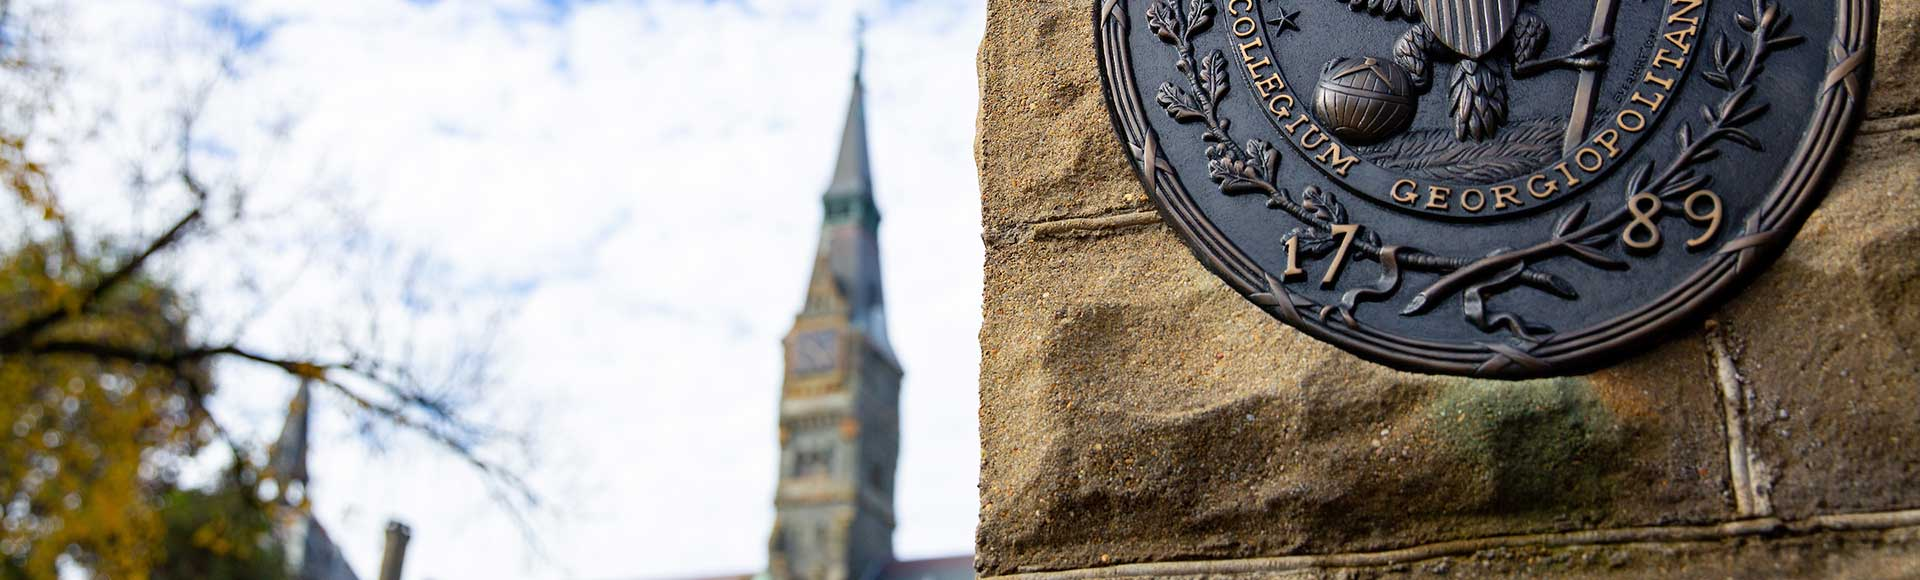 Main Gate Seal & Healy Building